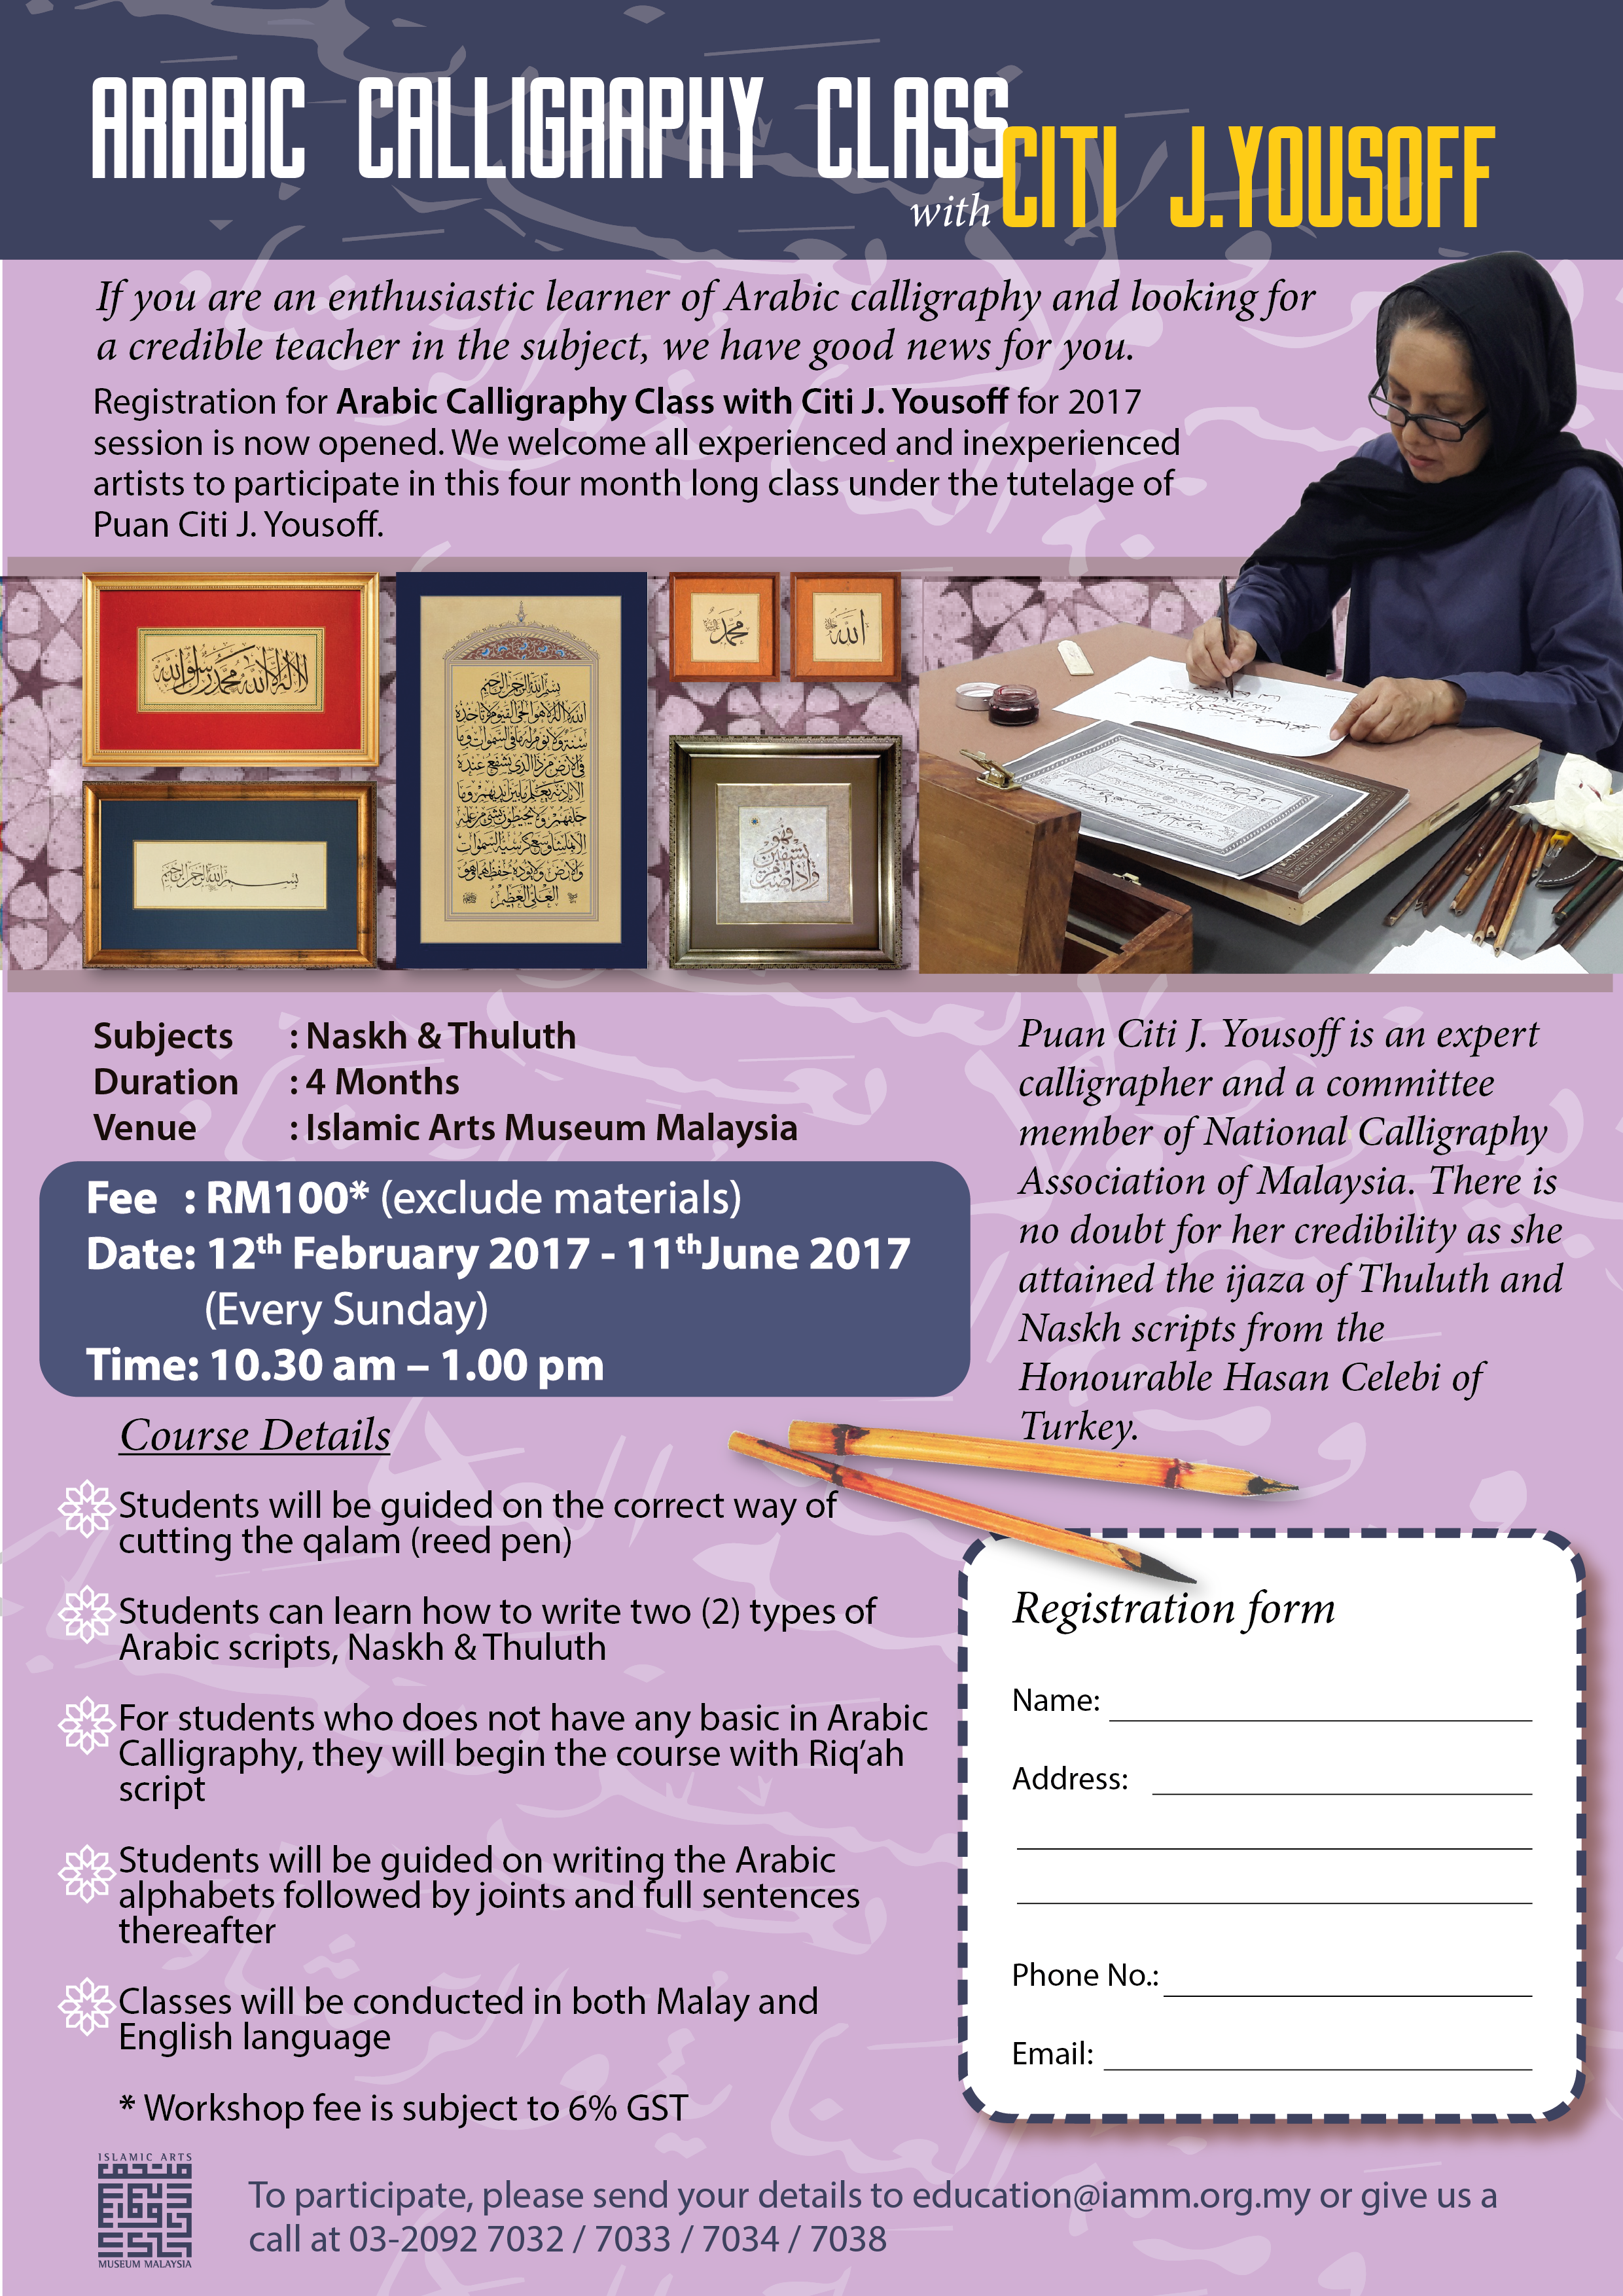 Arabic Calligraphy Class with Citi J Yousoff | IAMM